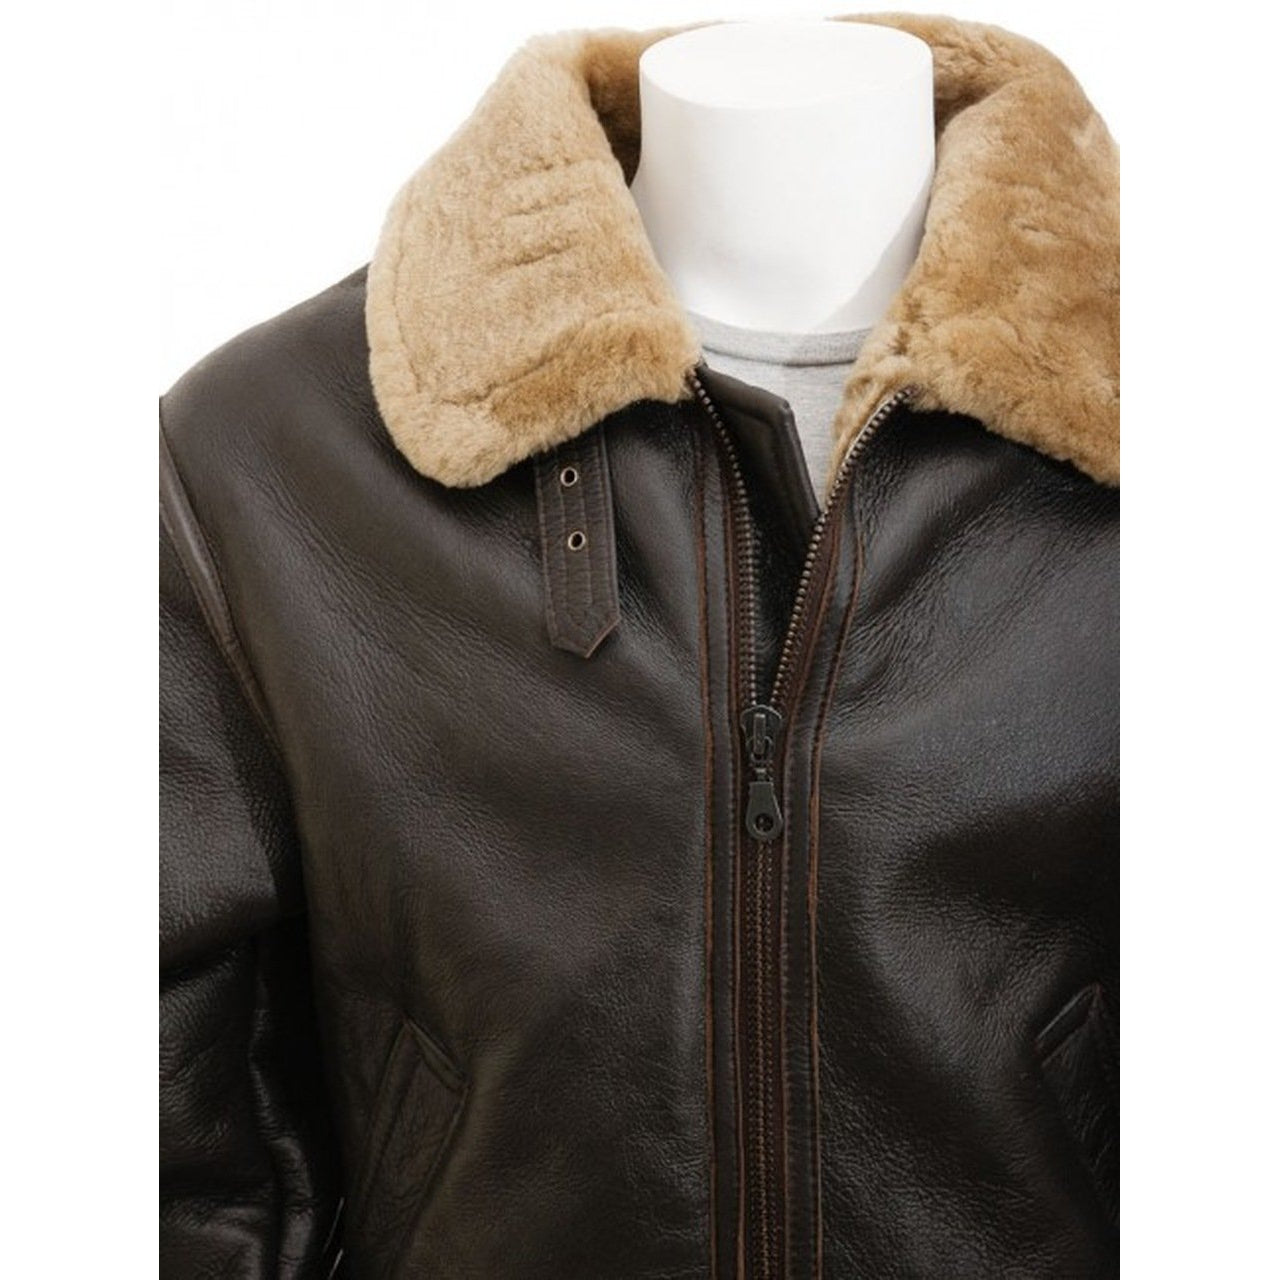 Shearling Aviator Brown Genuine Leather jacket Men - Leather Jacket